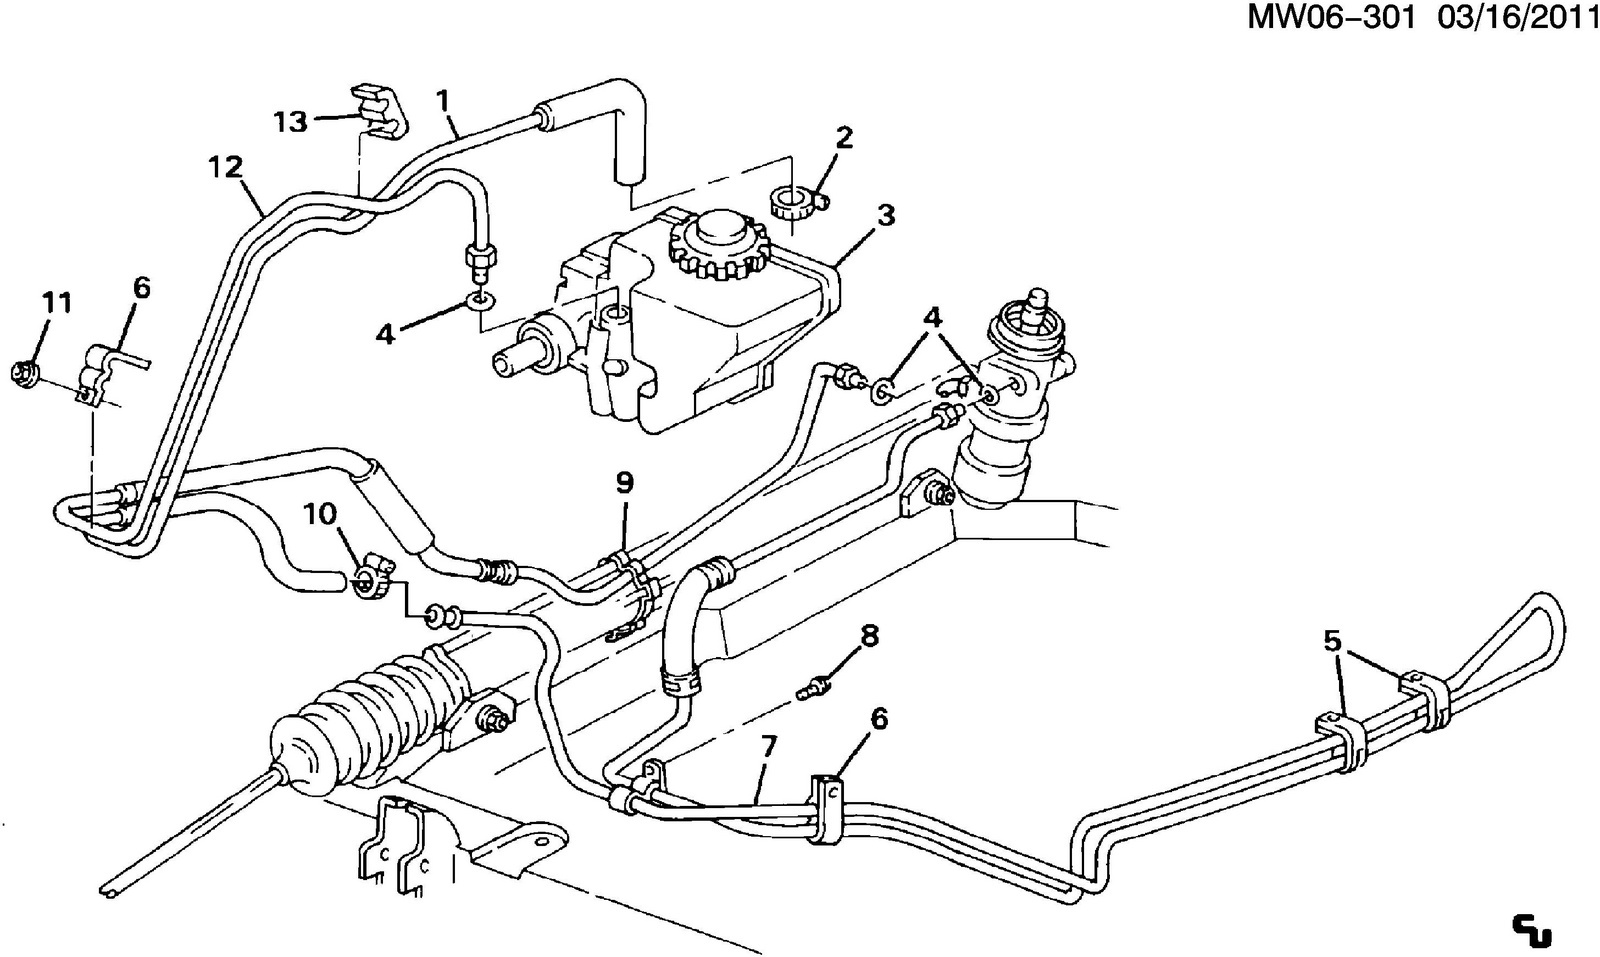 Discussion T16816 ds577757 on 1999 buick century vacuum diagram